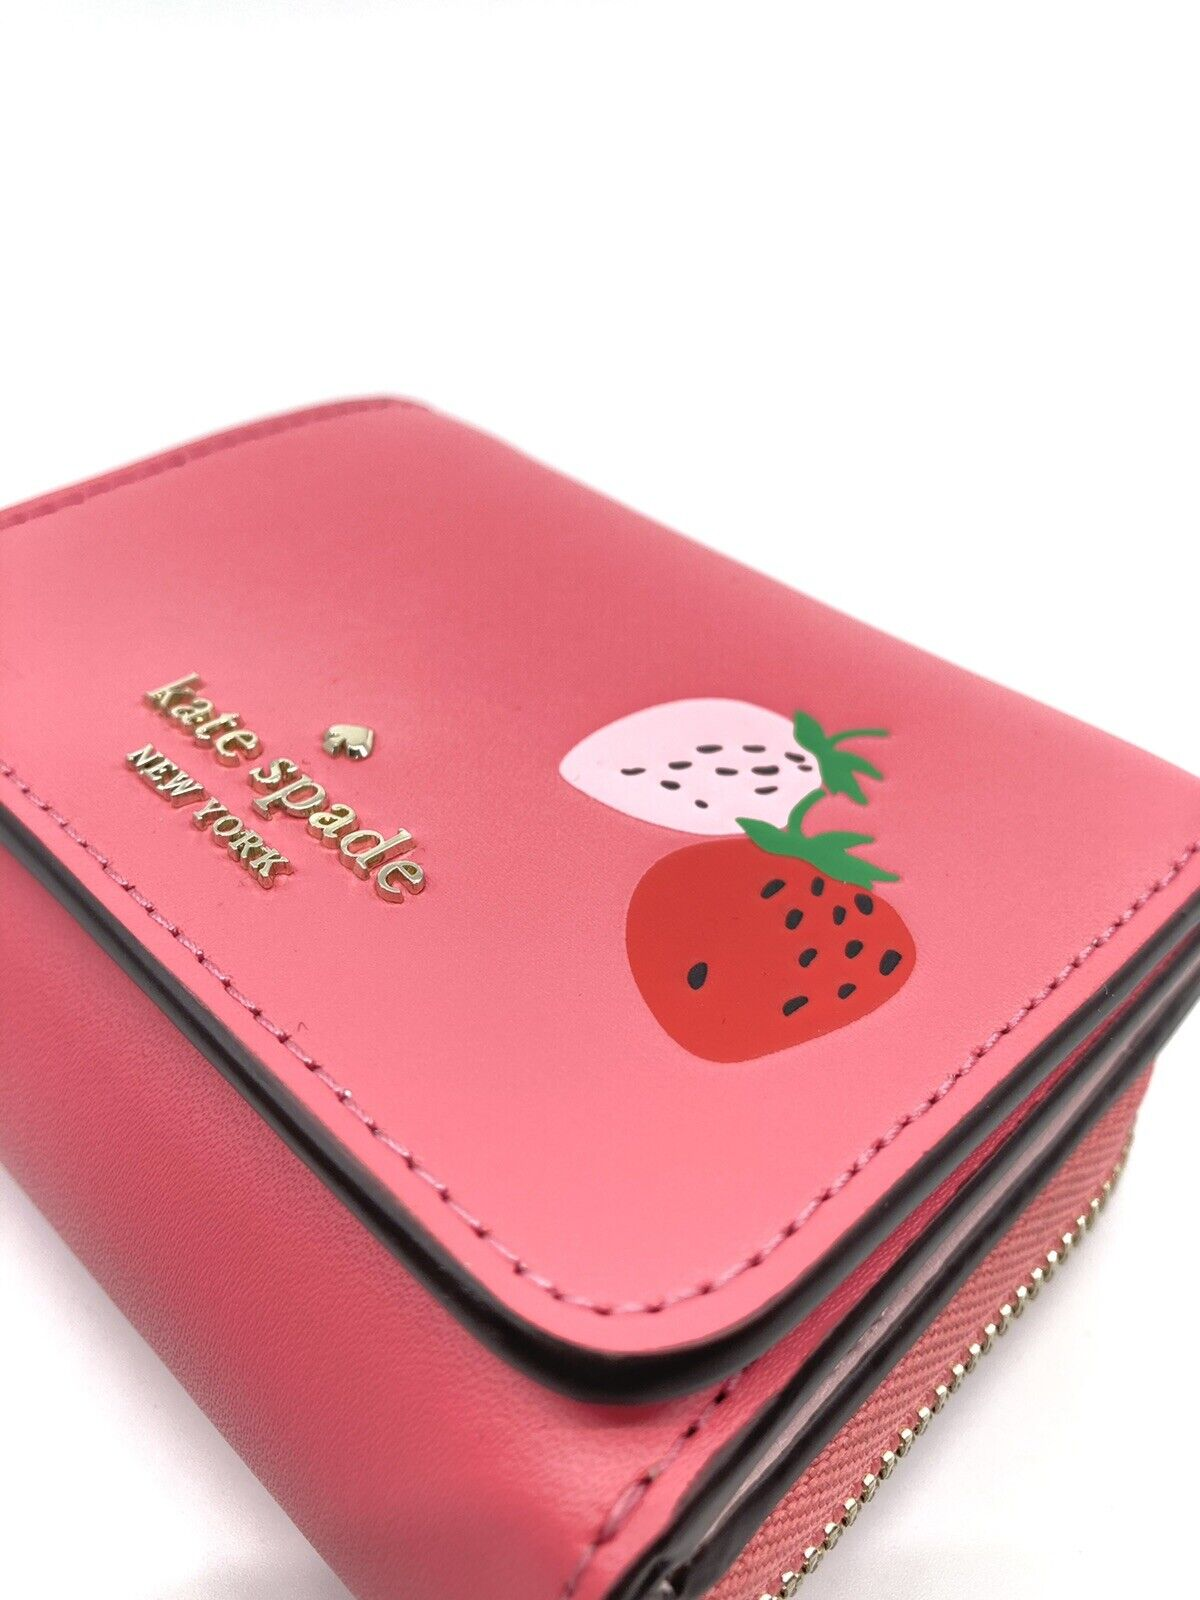 Kate Spade Trifold Compact Wallet Strawberry Picnic In The Park Series